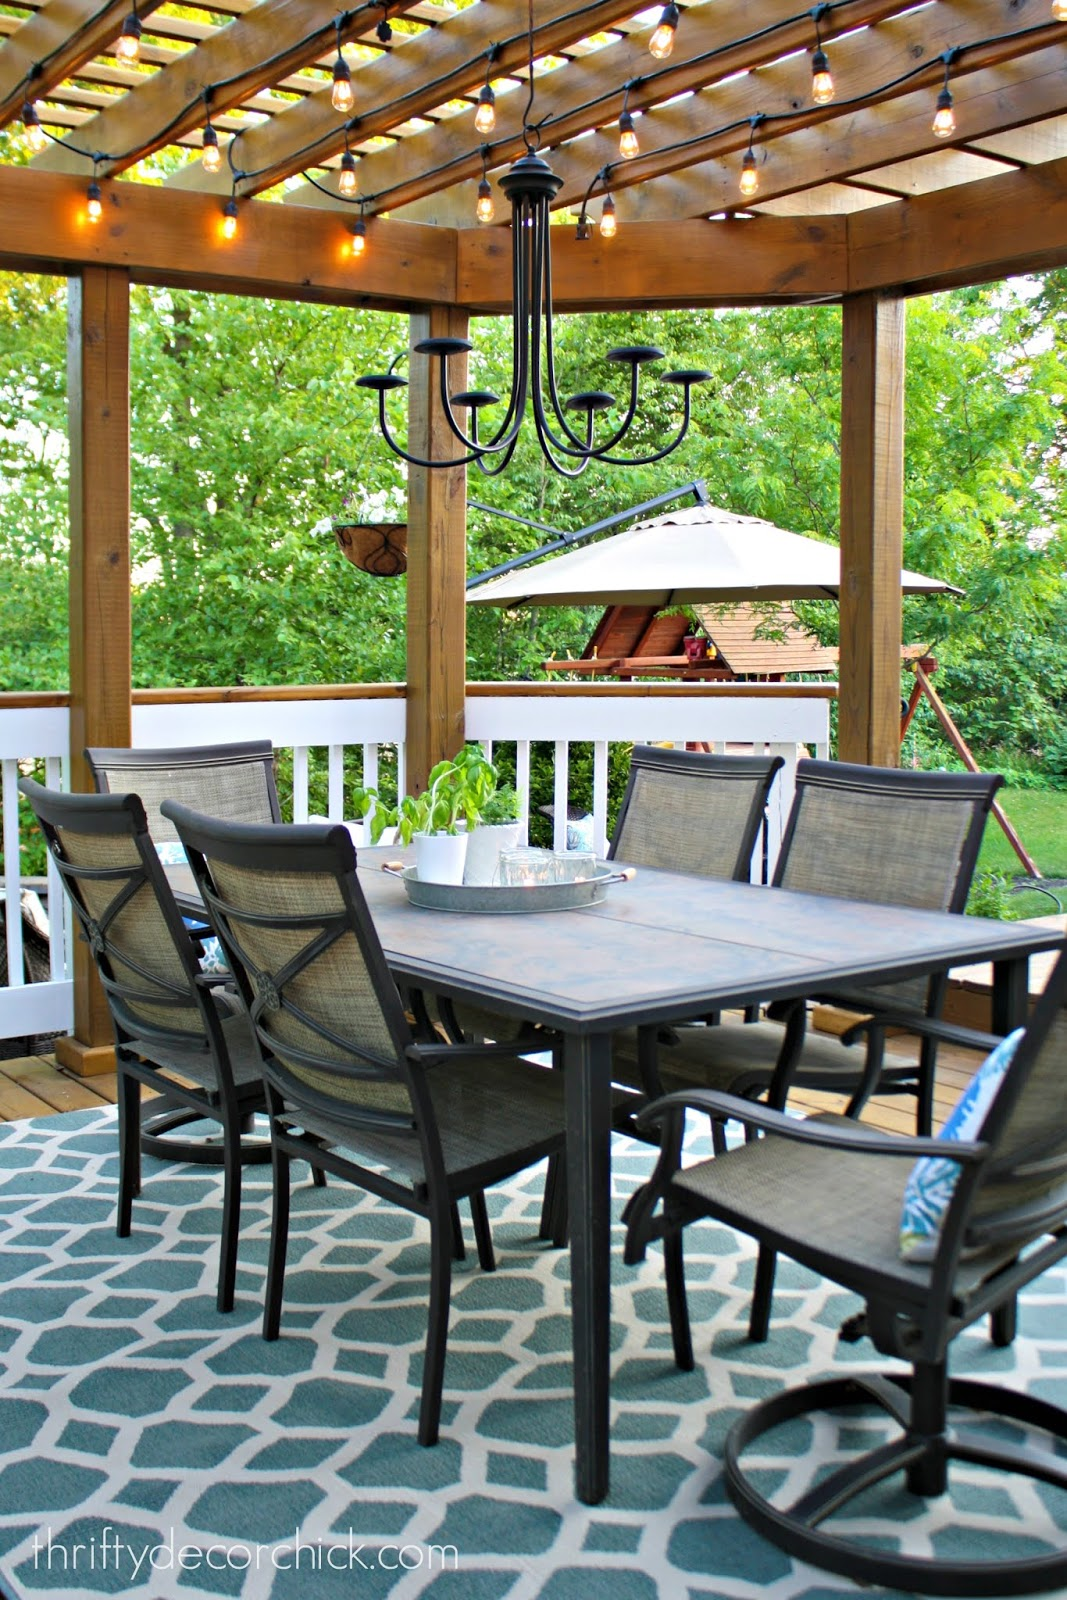 Pergola on deck with table and chairs